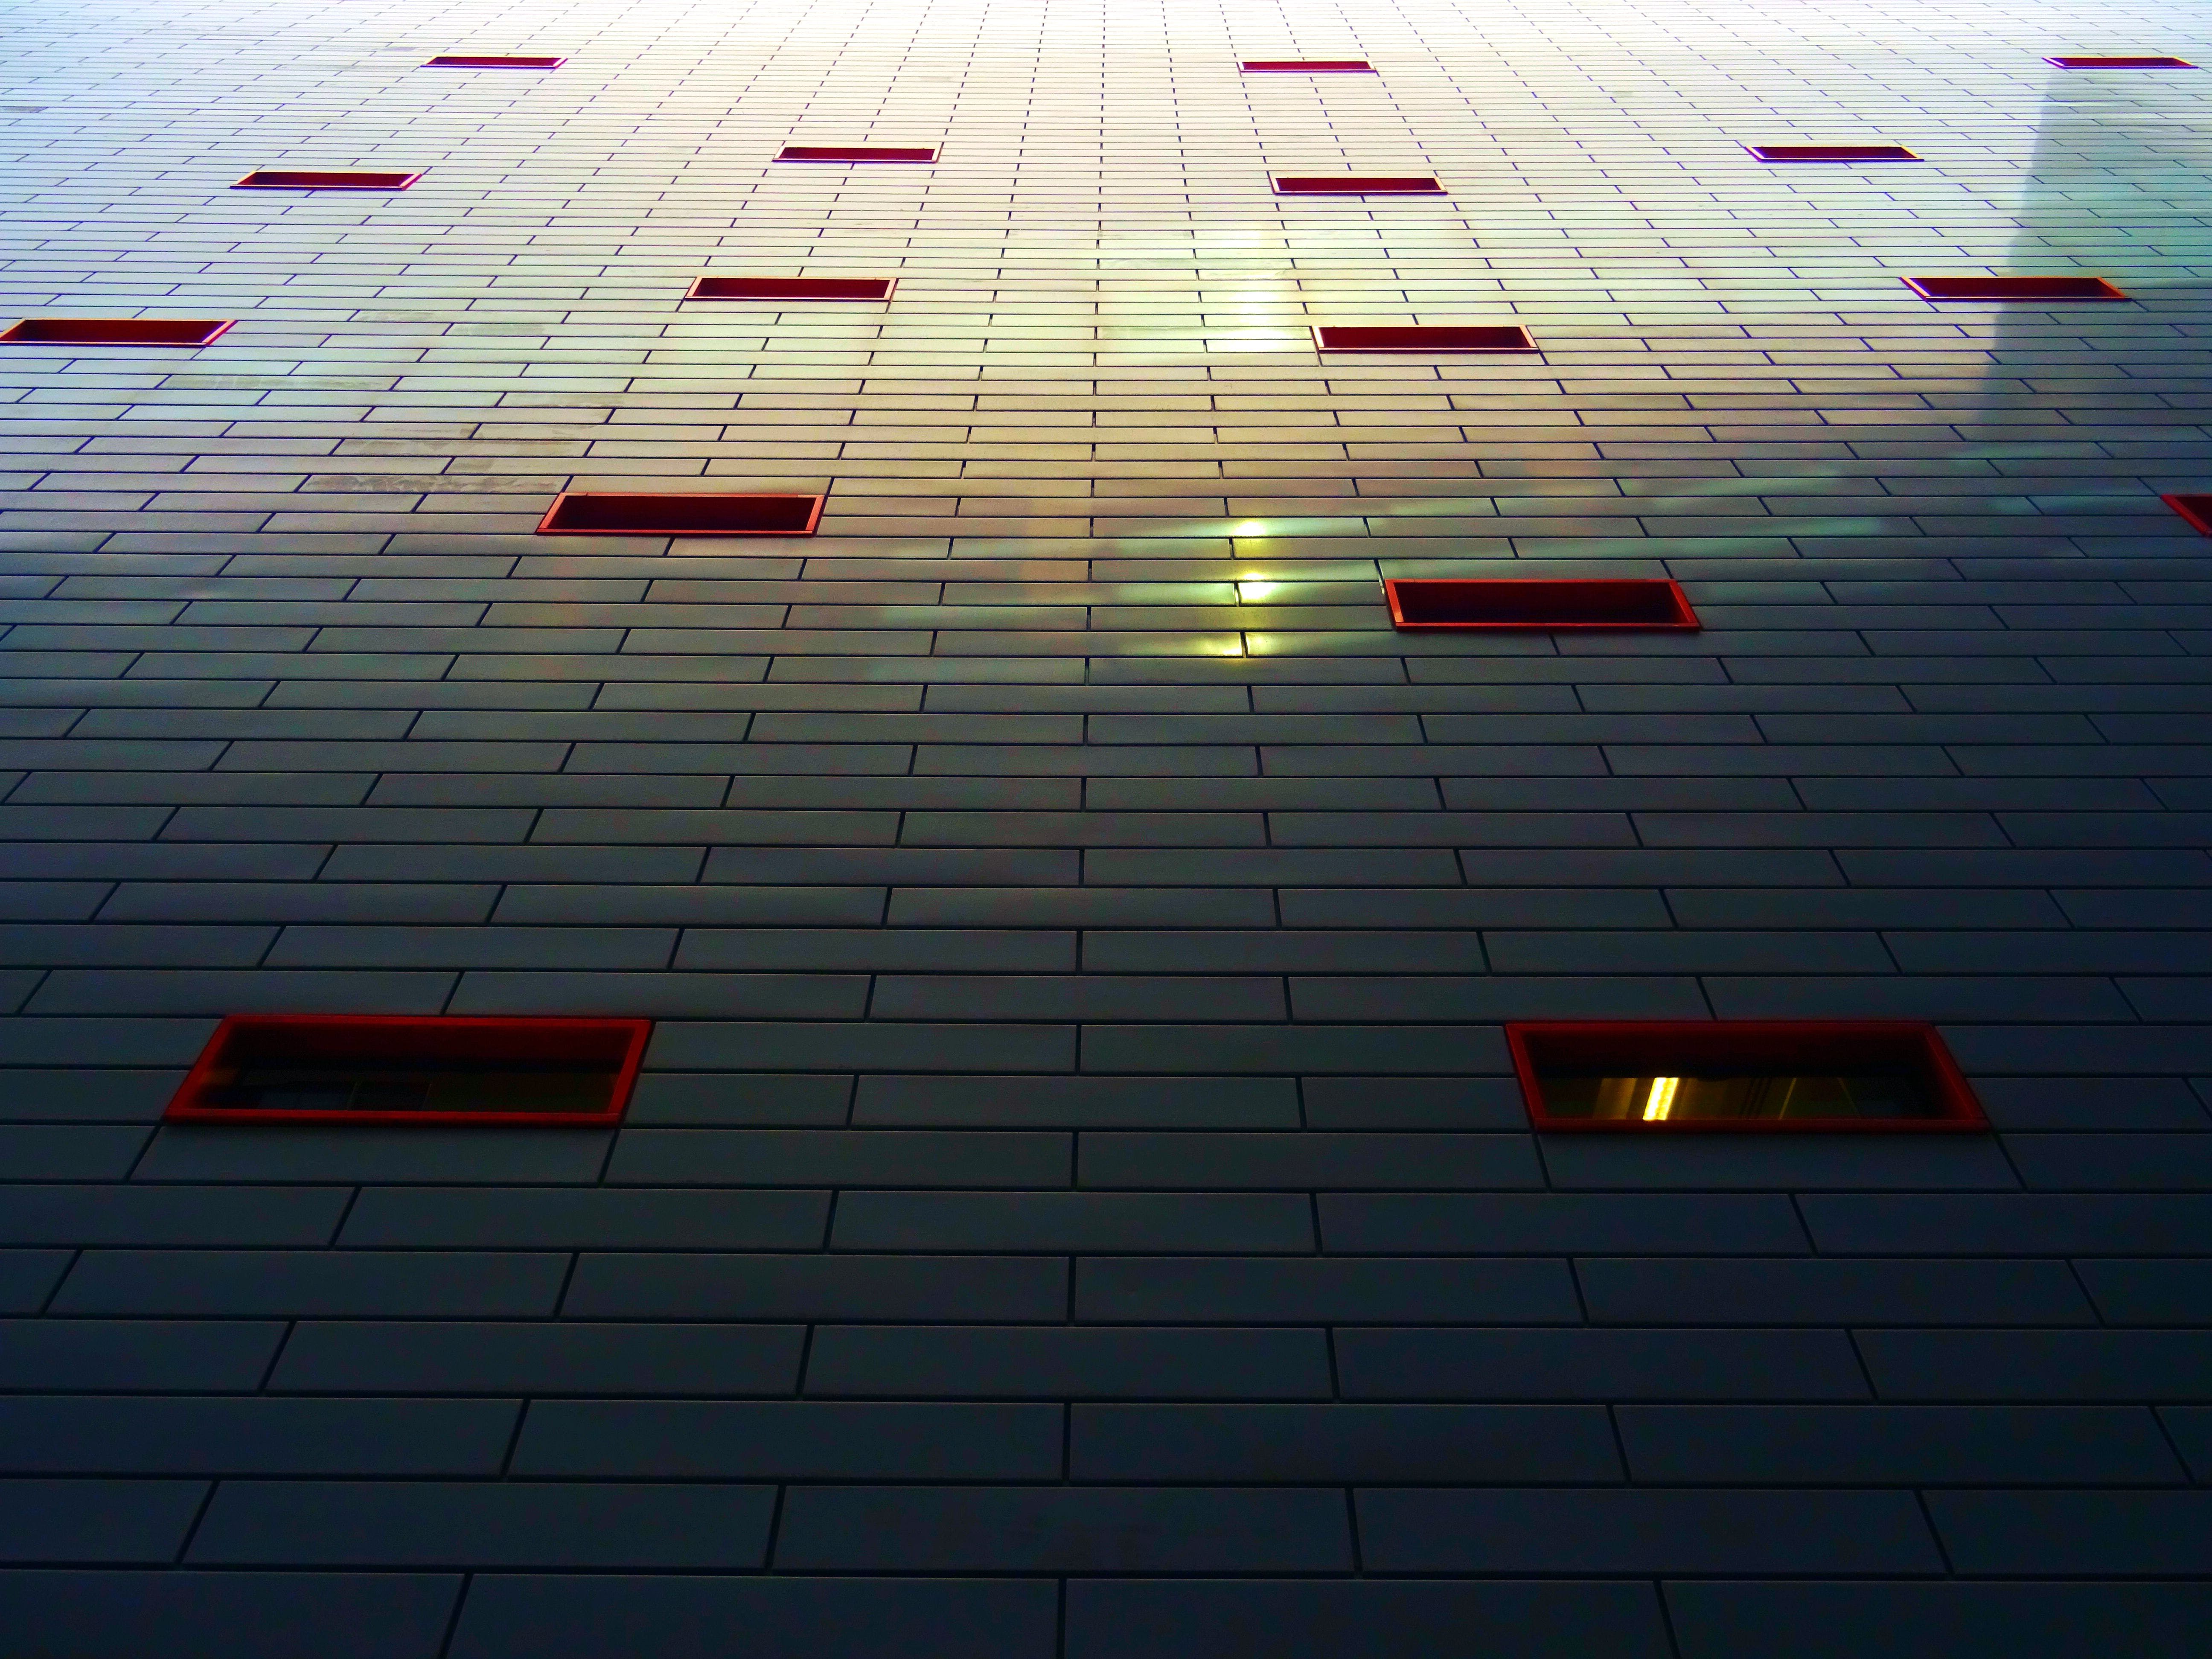 Architectural Photography of Buildings and Windows